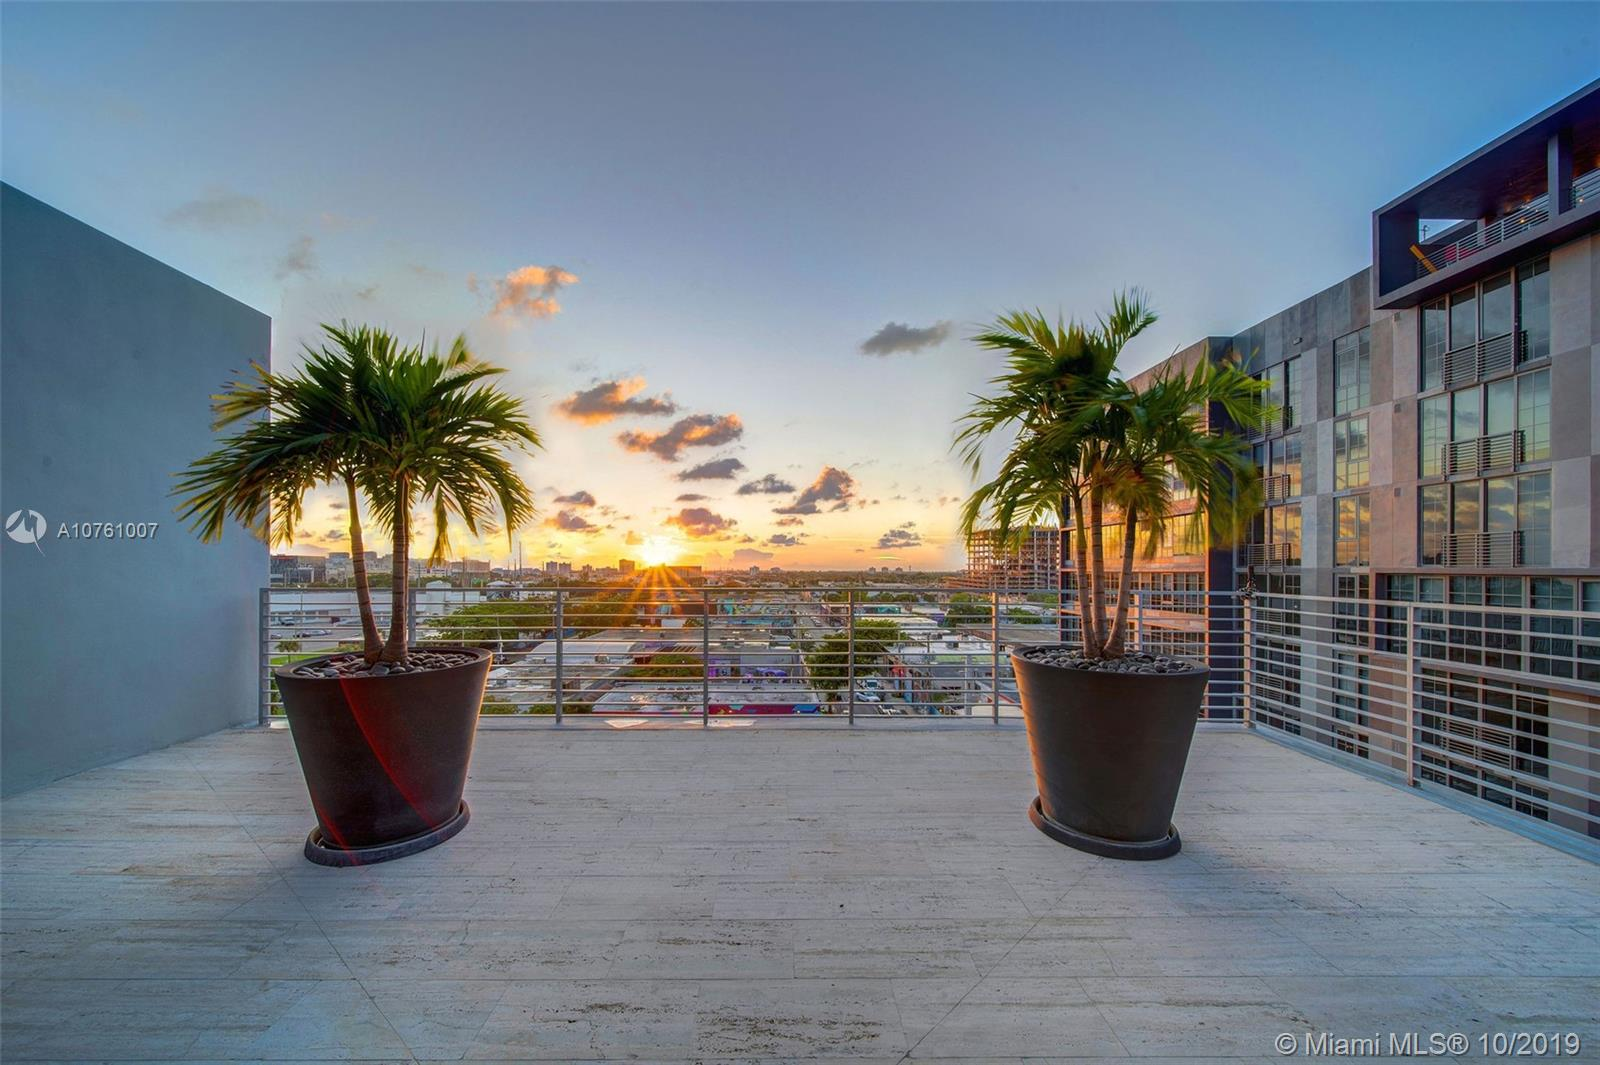 250 24th st-PH-A miami-fl-33127-a10761007-Pic50